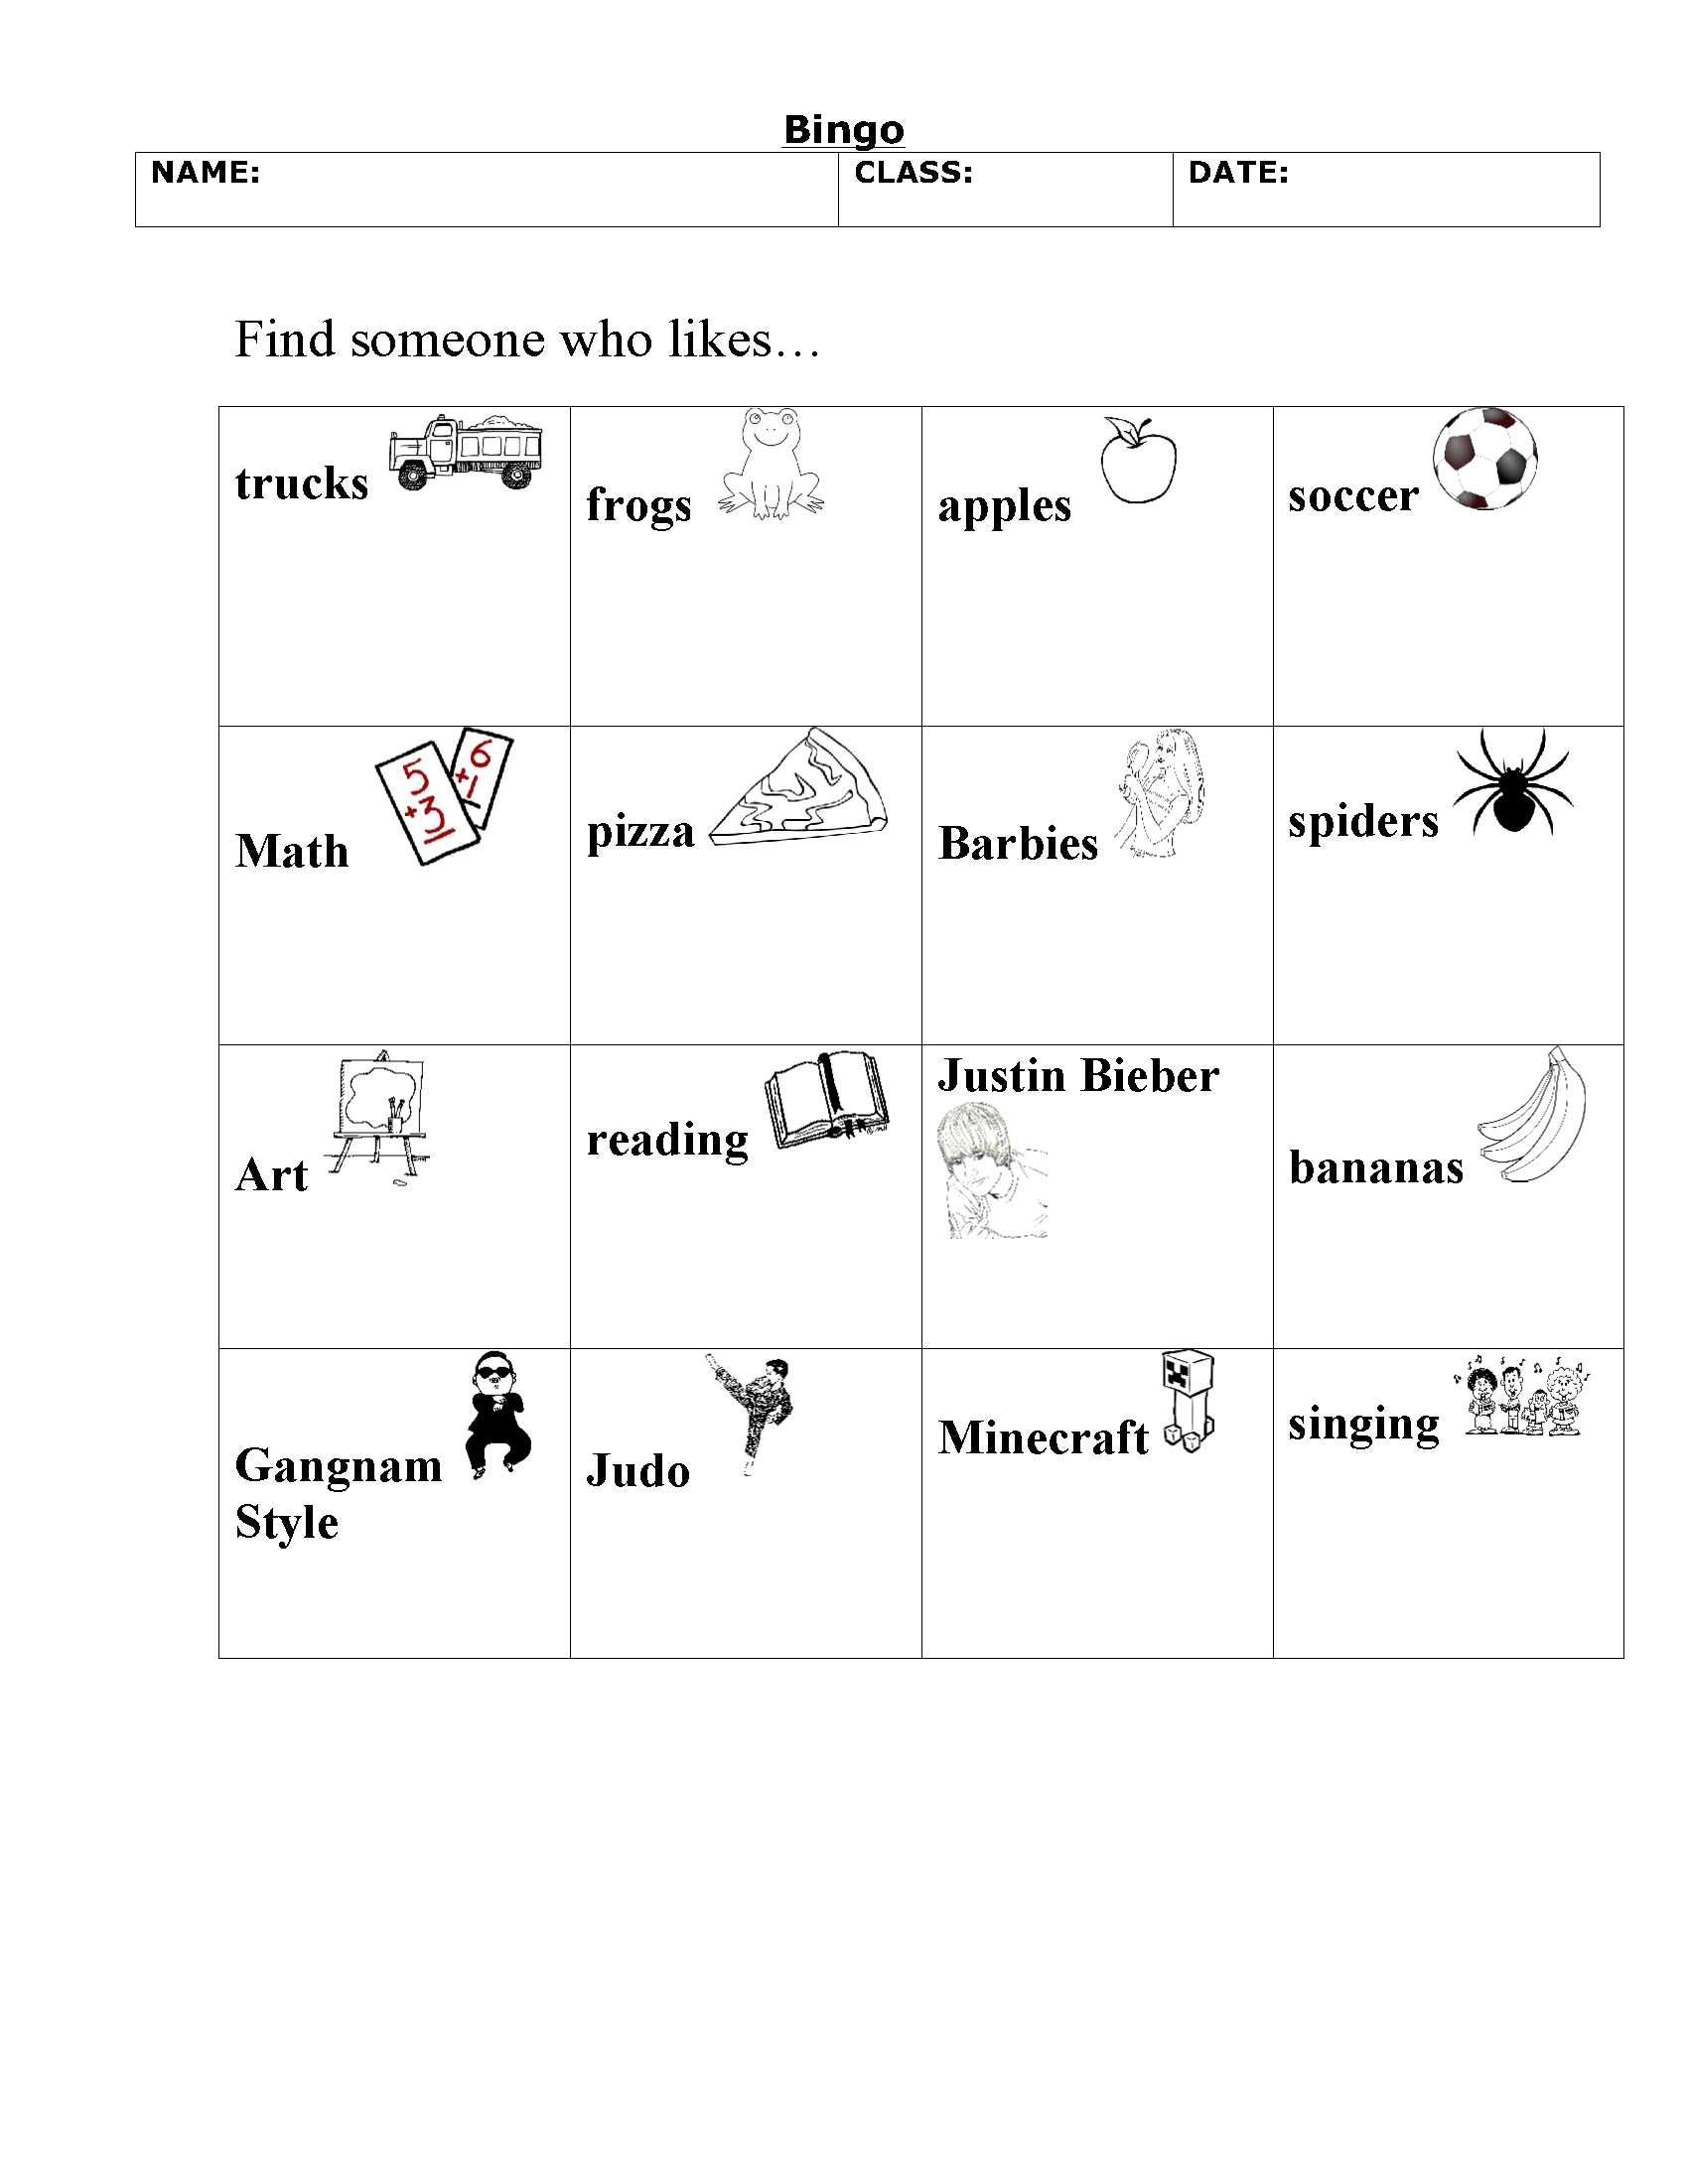 My Grade 1 Version Of People Bingo